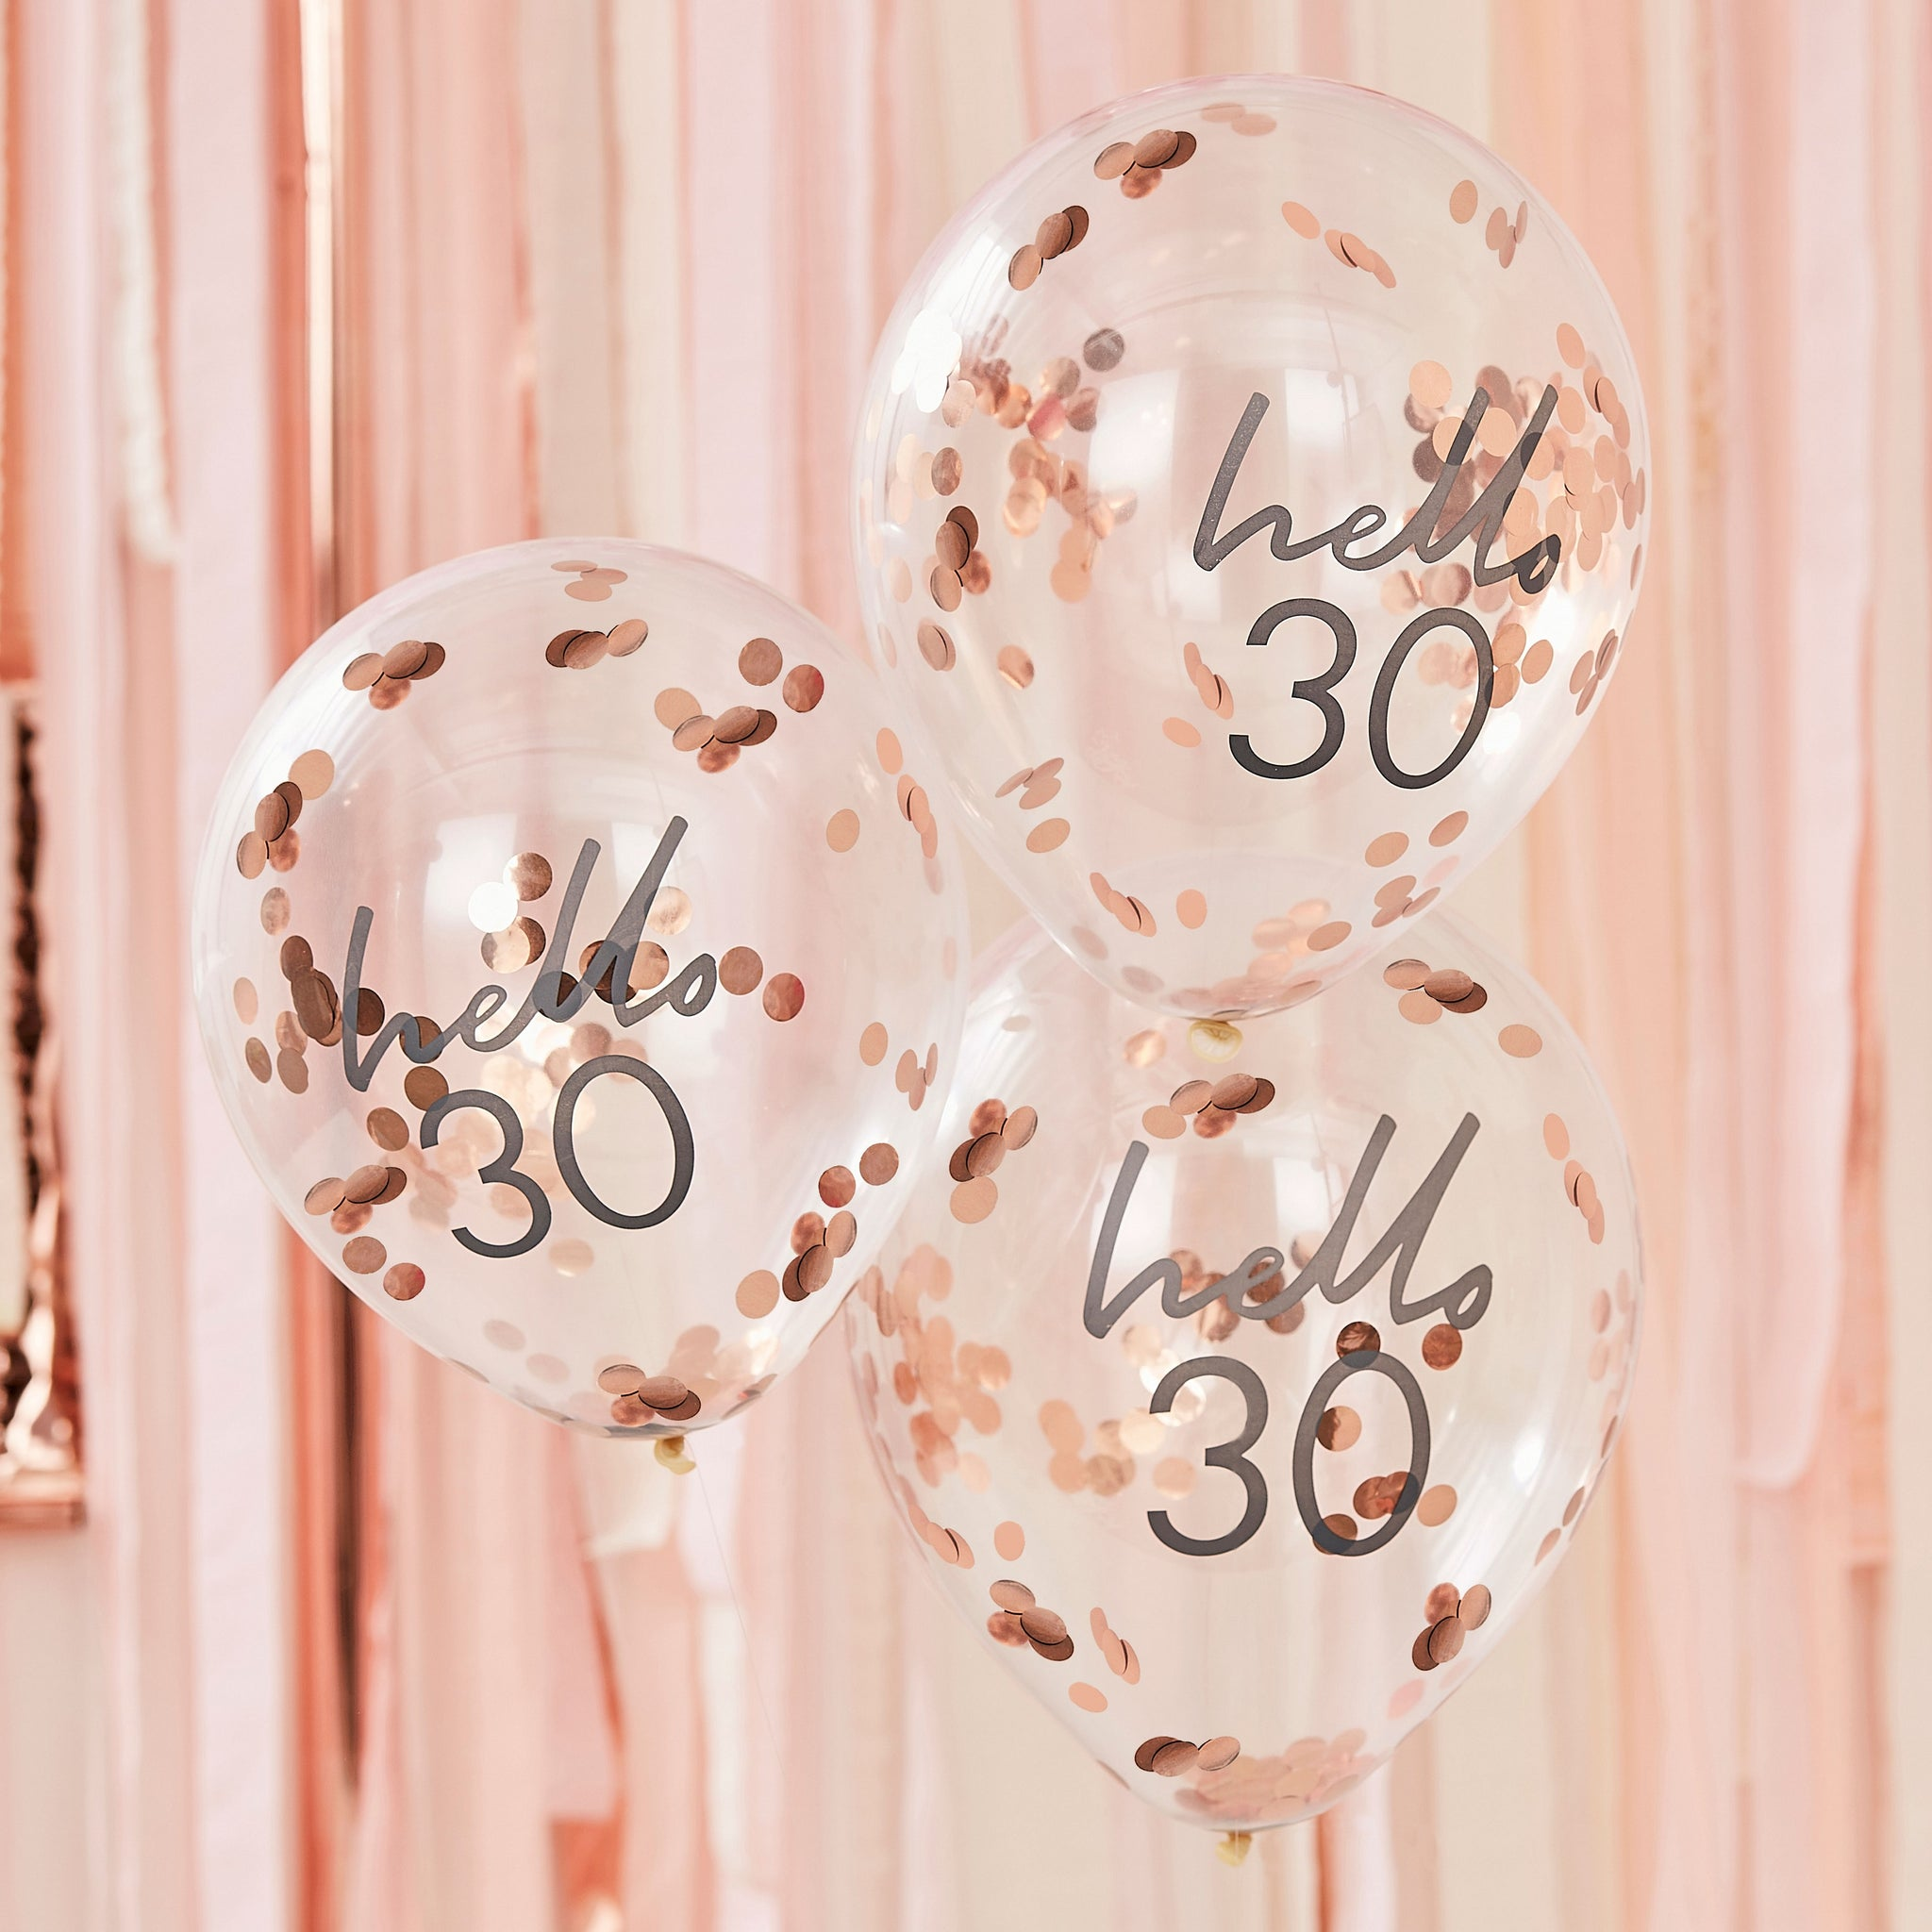 Hello 30 Birthday Balloons - The Pretty Prop Shop Parties, Auckland New Zealand